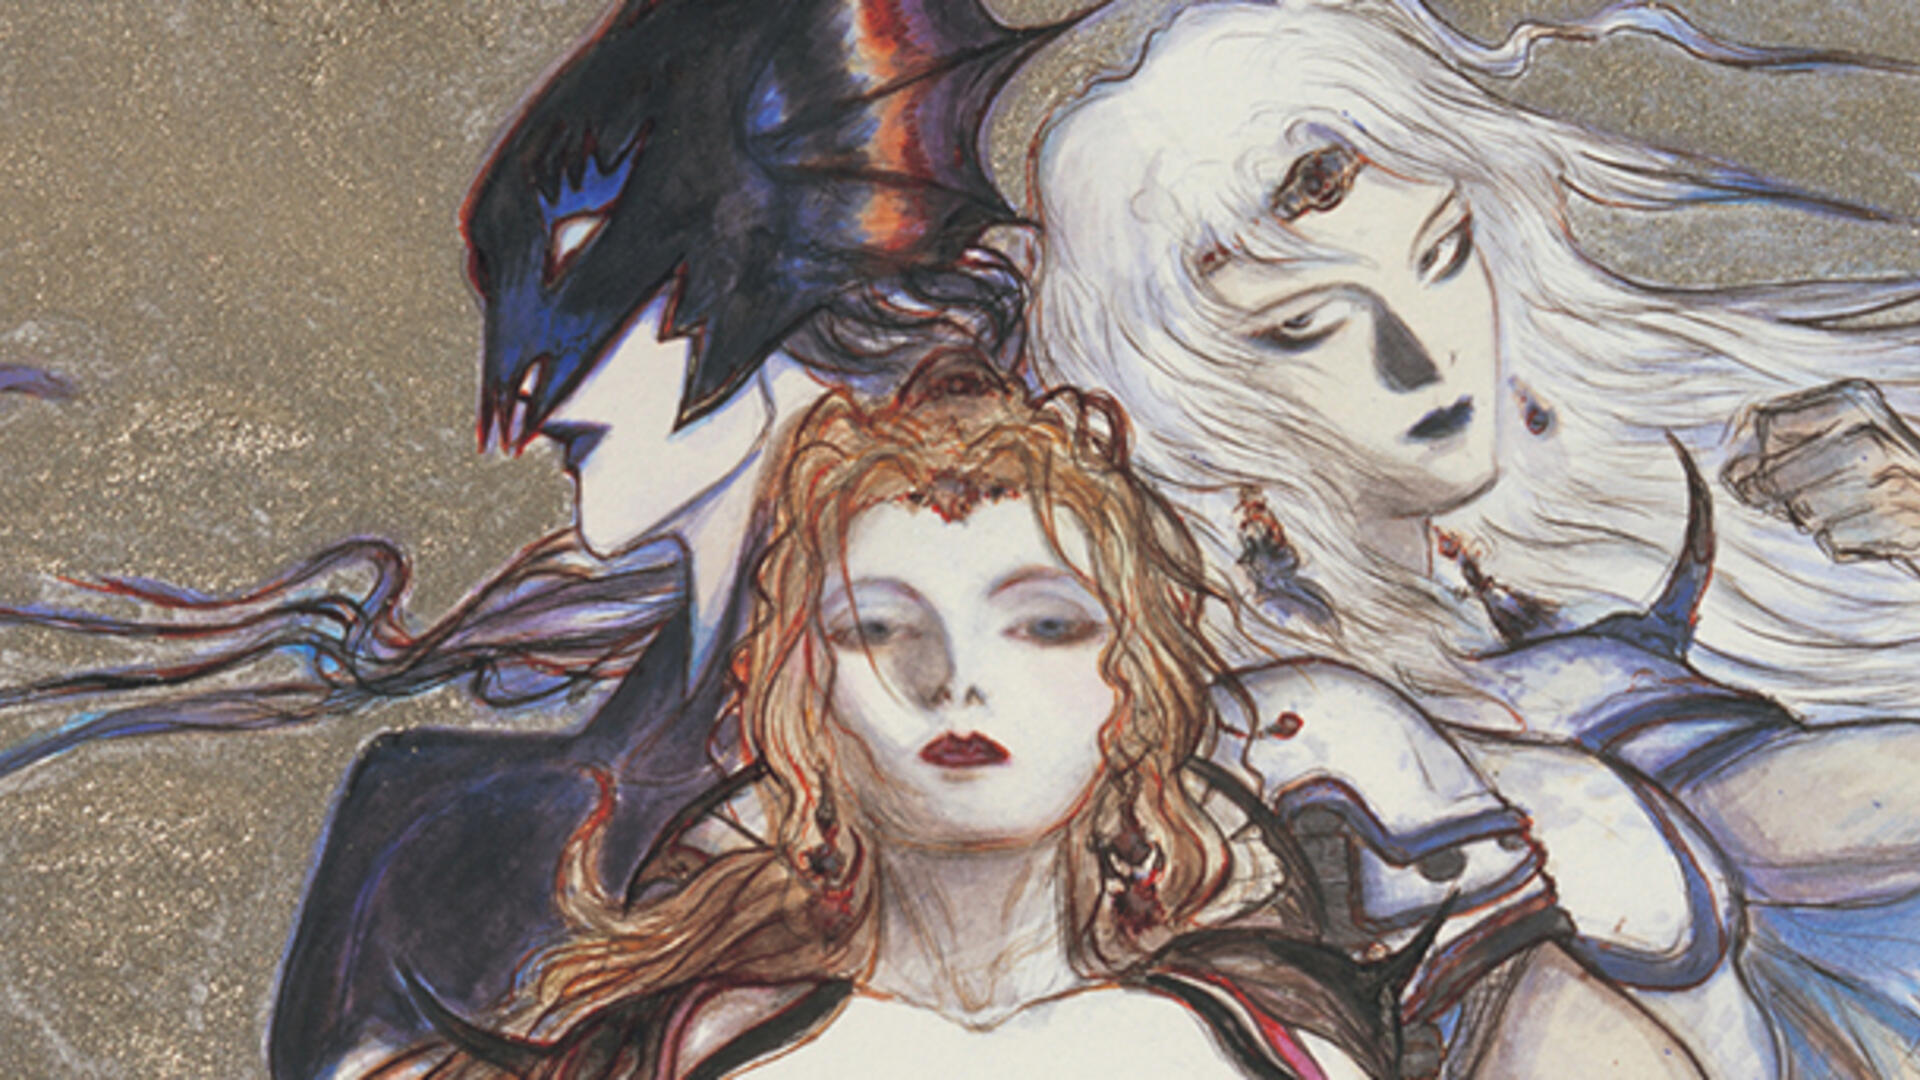 Final Fantasy IV Let's Play: Oh Right, That's How You Beat Dark Elf (Now With Timestamps!)